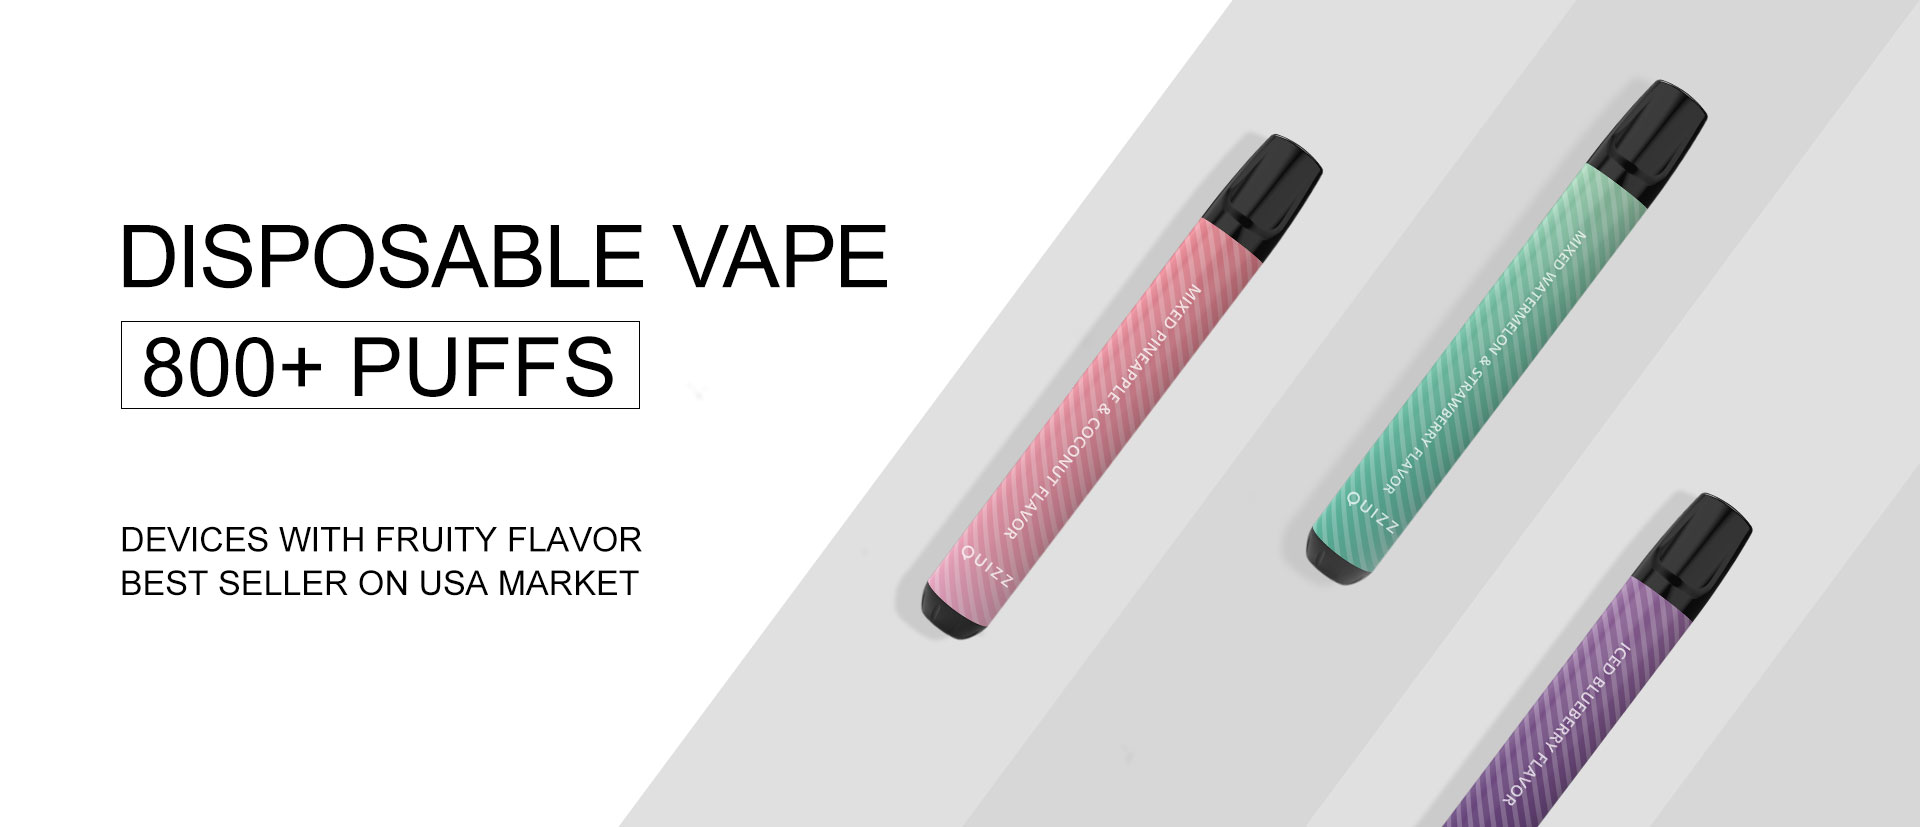 Disposable Vape 800 puffs